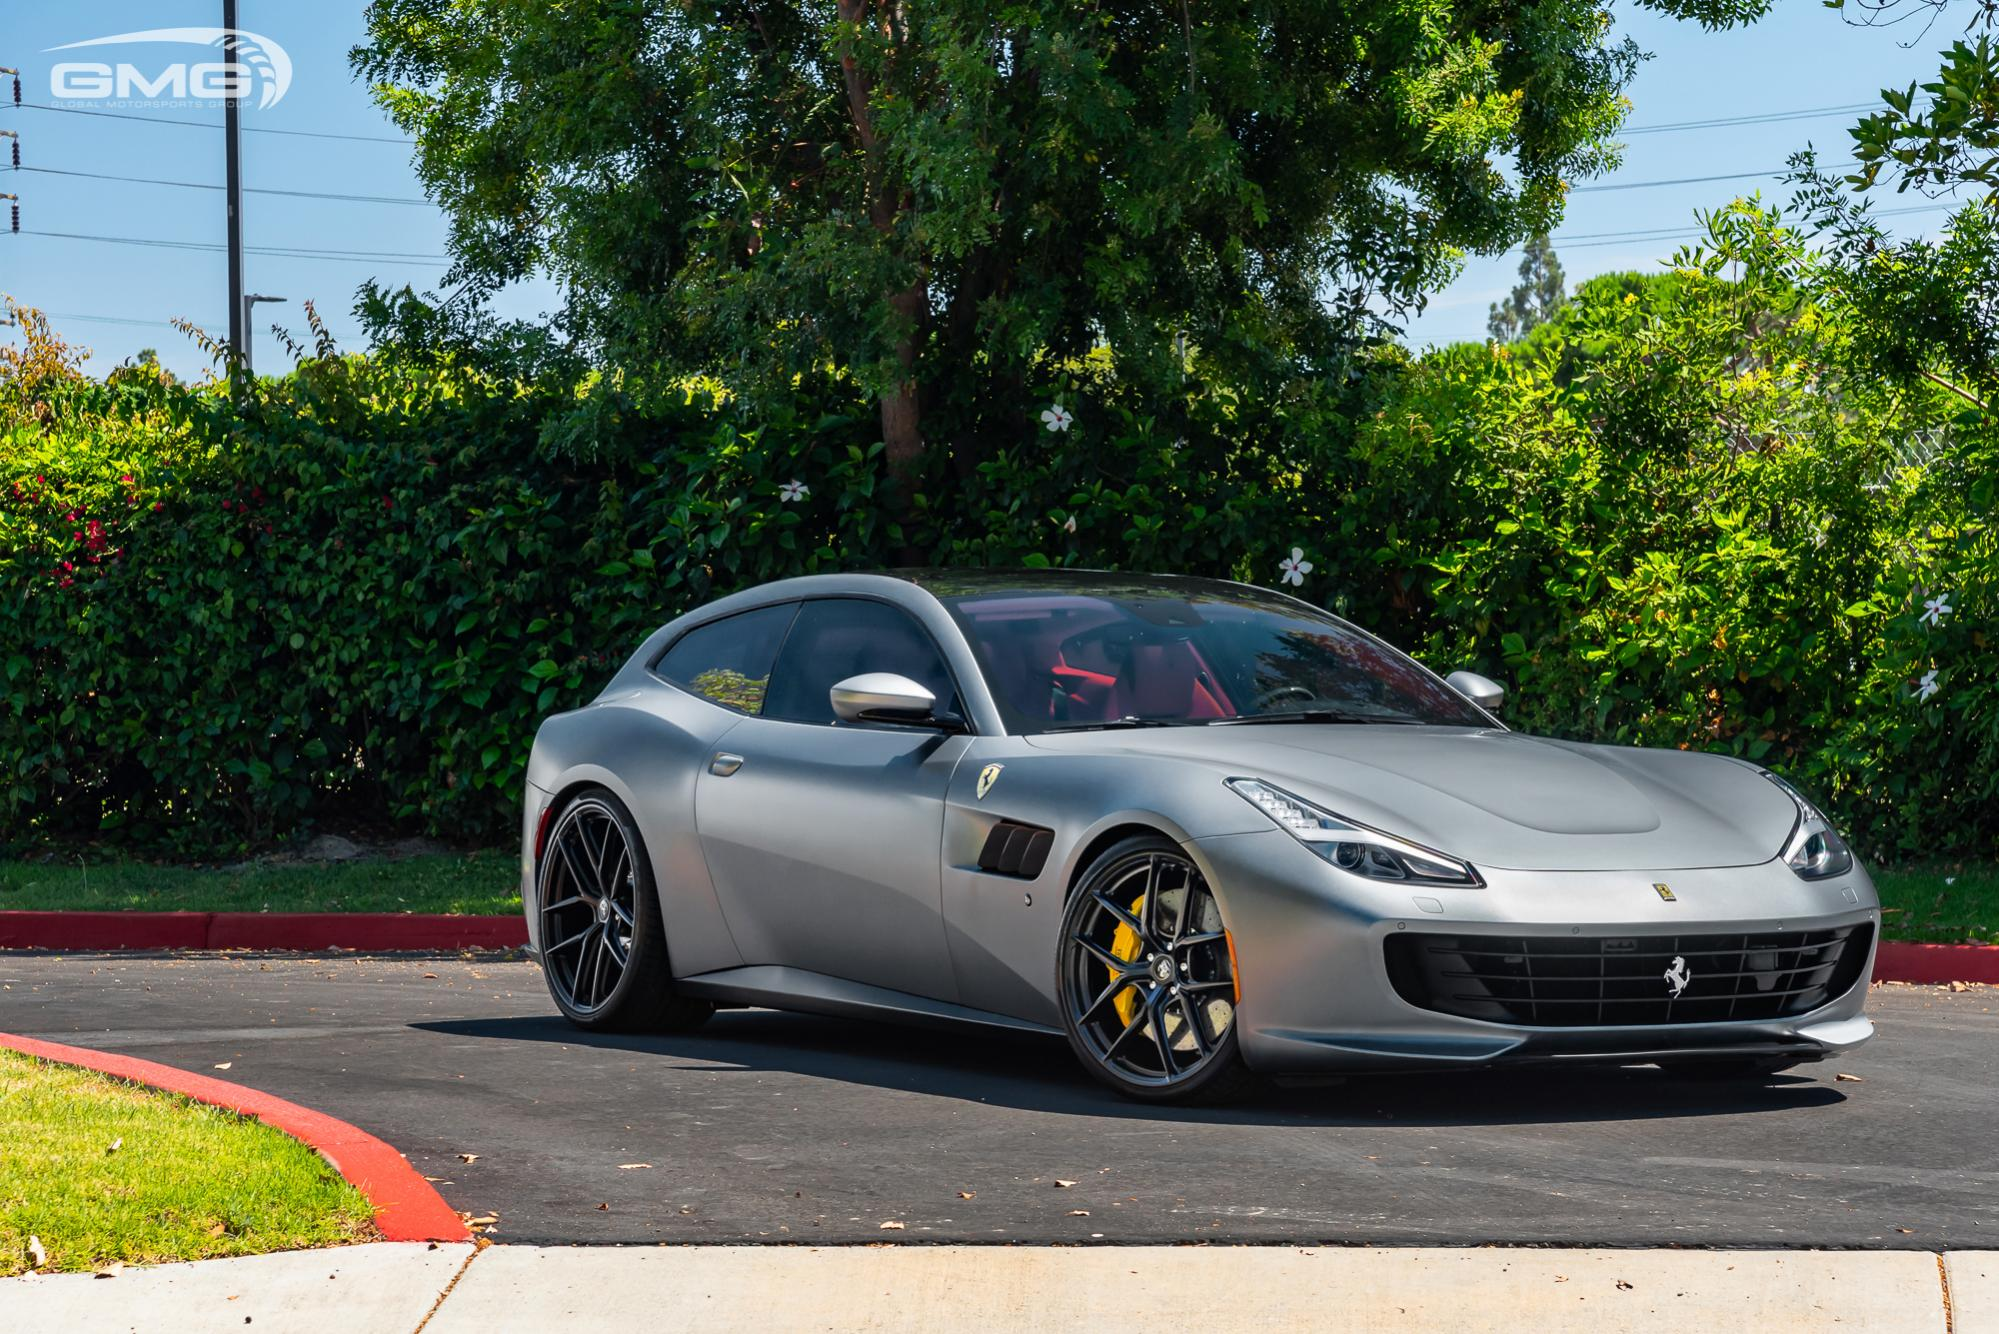 Click image for larger version  Name:Lusso 3.jpg Views:18 Size:487.7 KB ID:1611